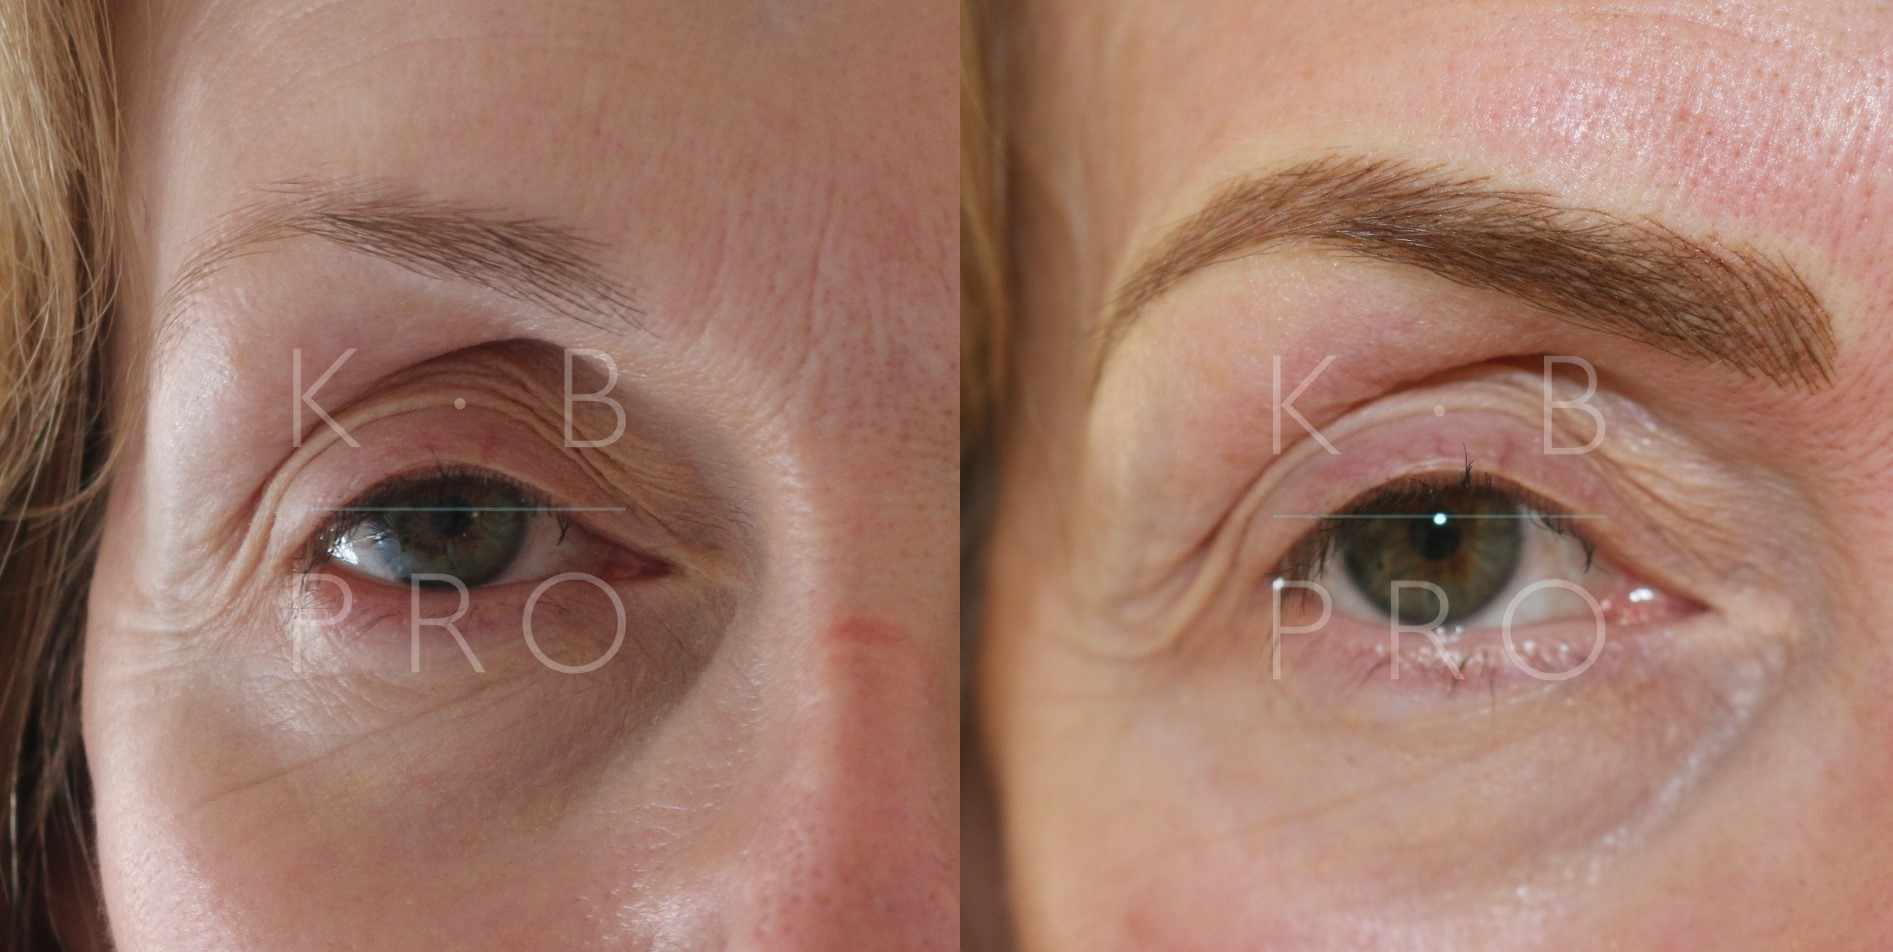 What is Fade Factor and why is it important in permanent makeup